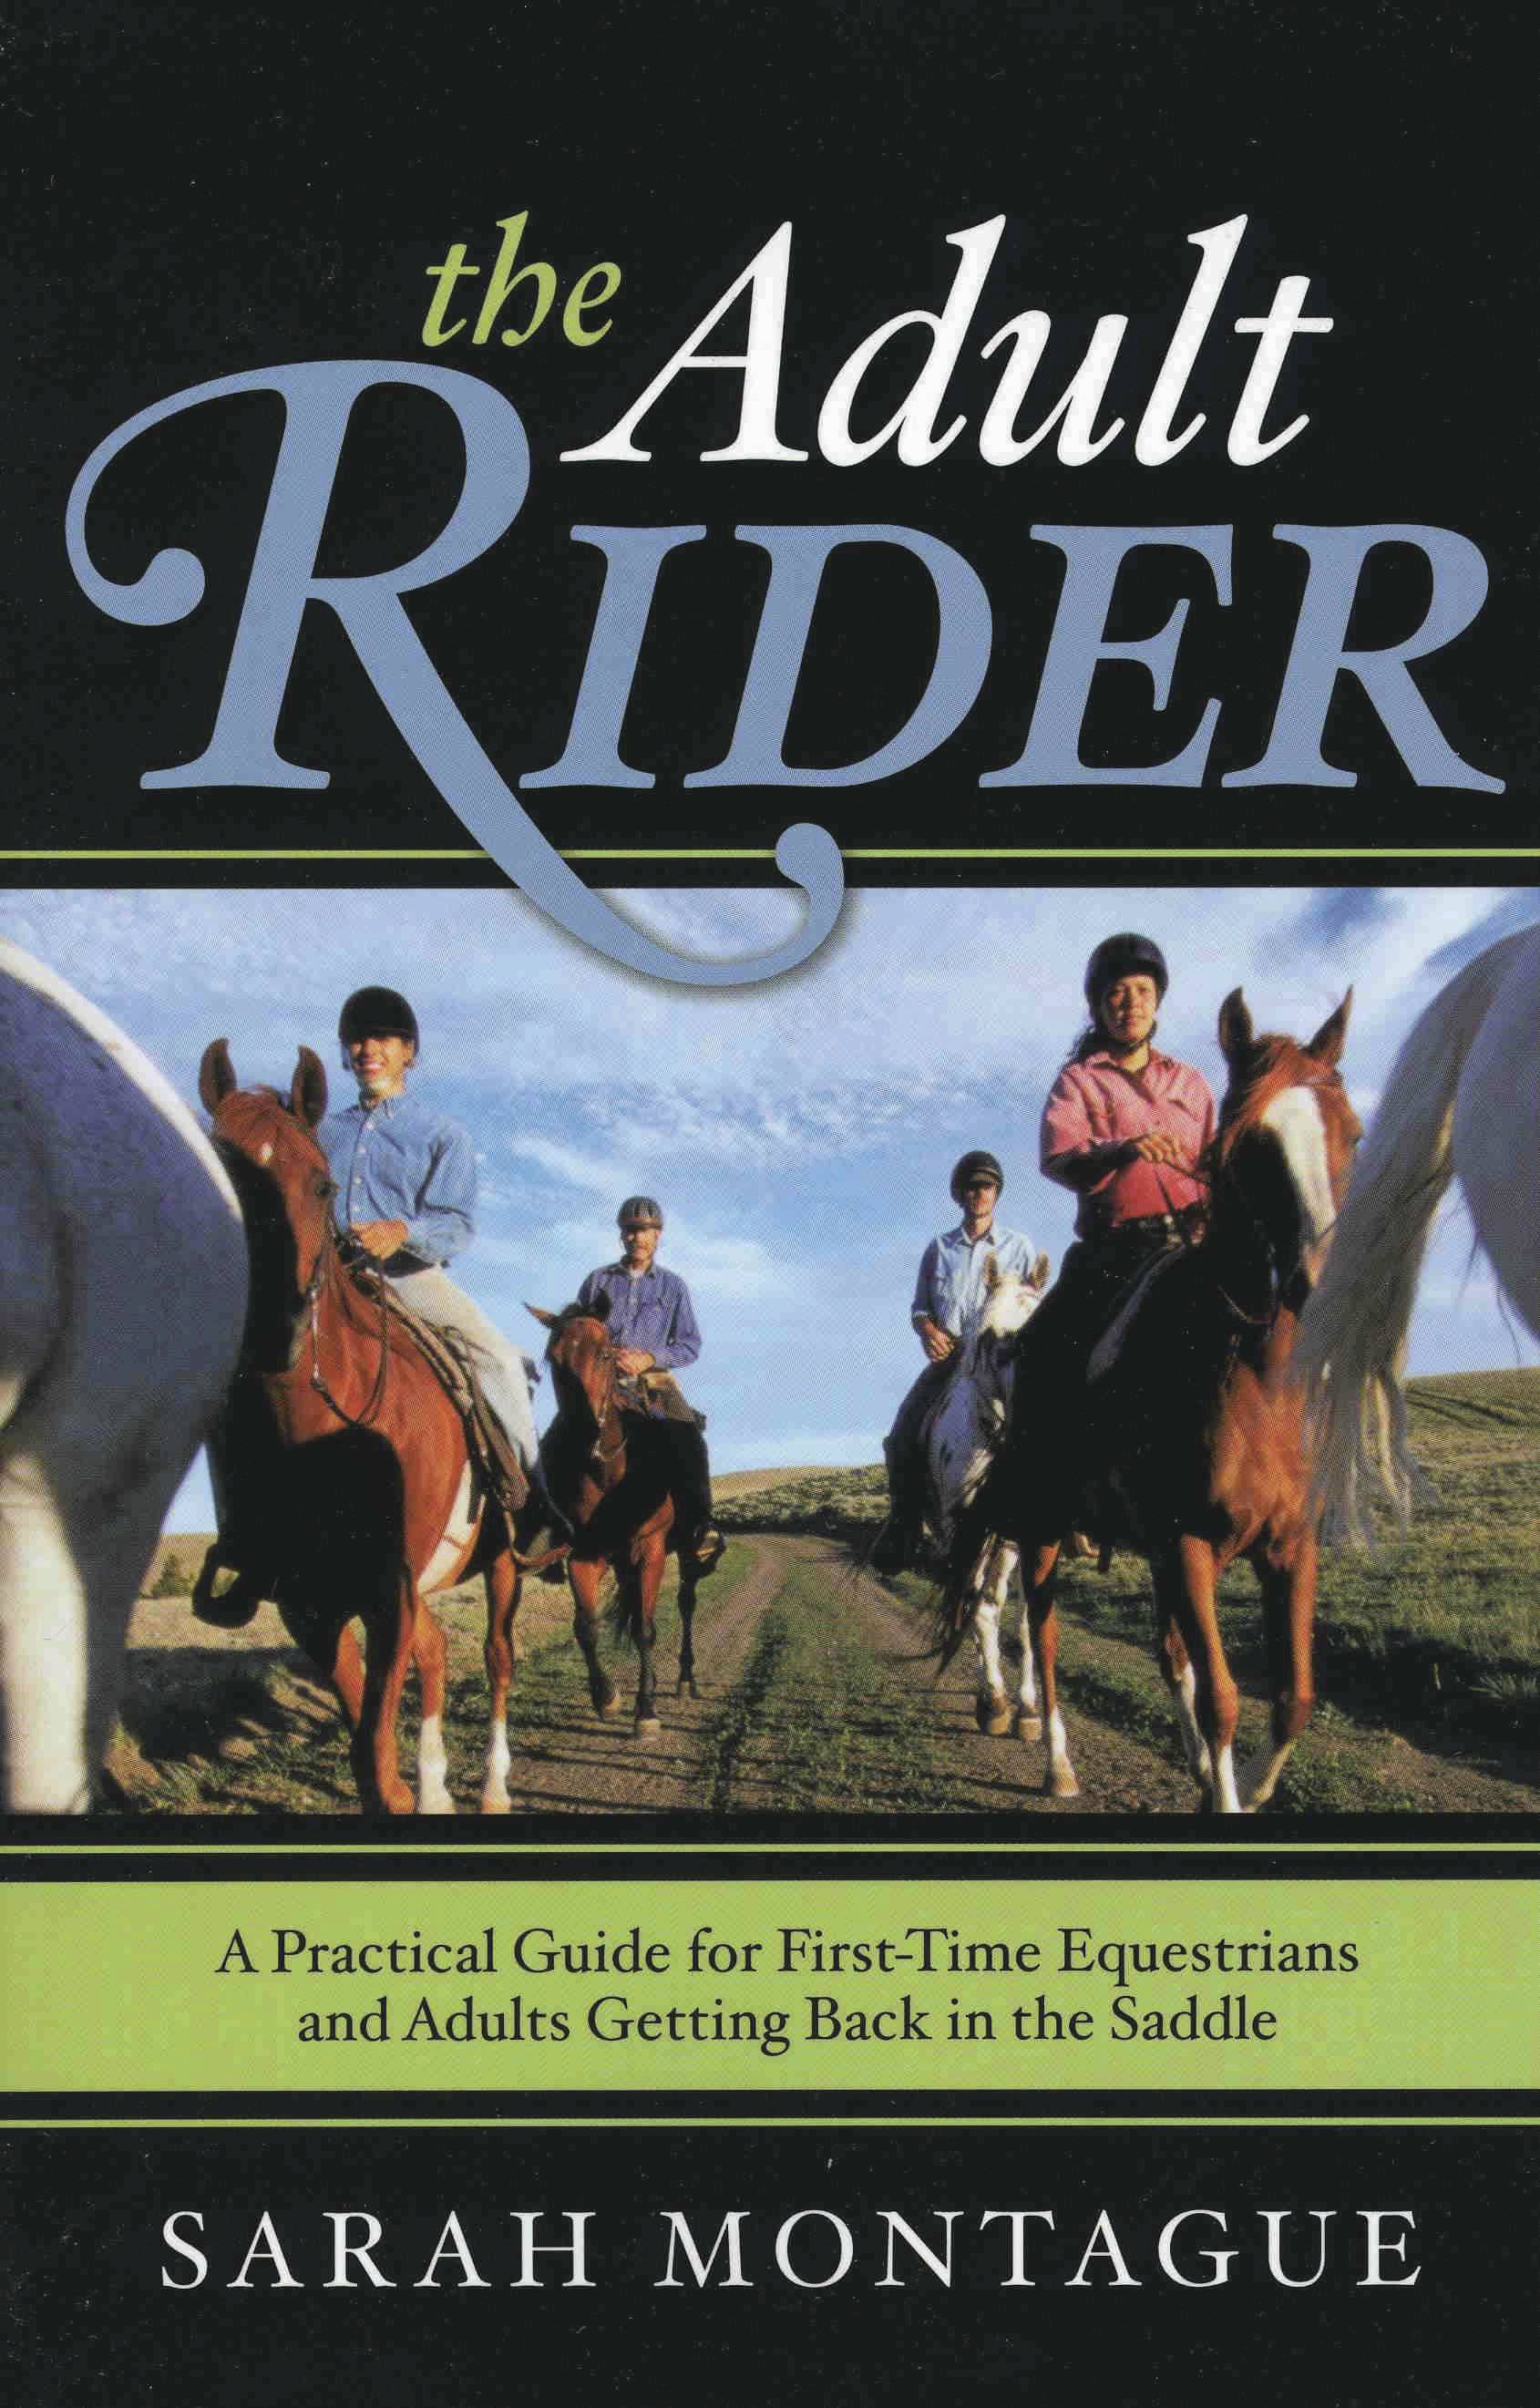 The Adult Rider